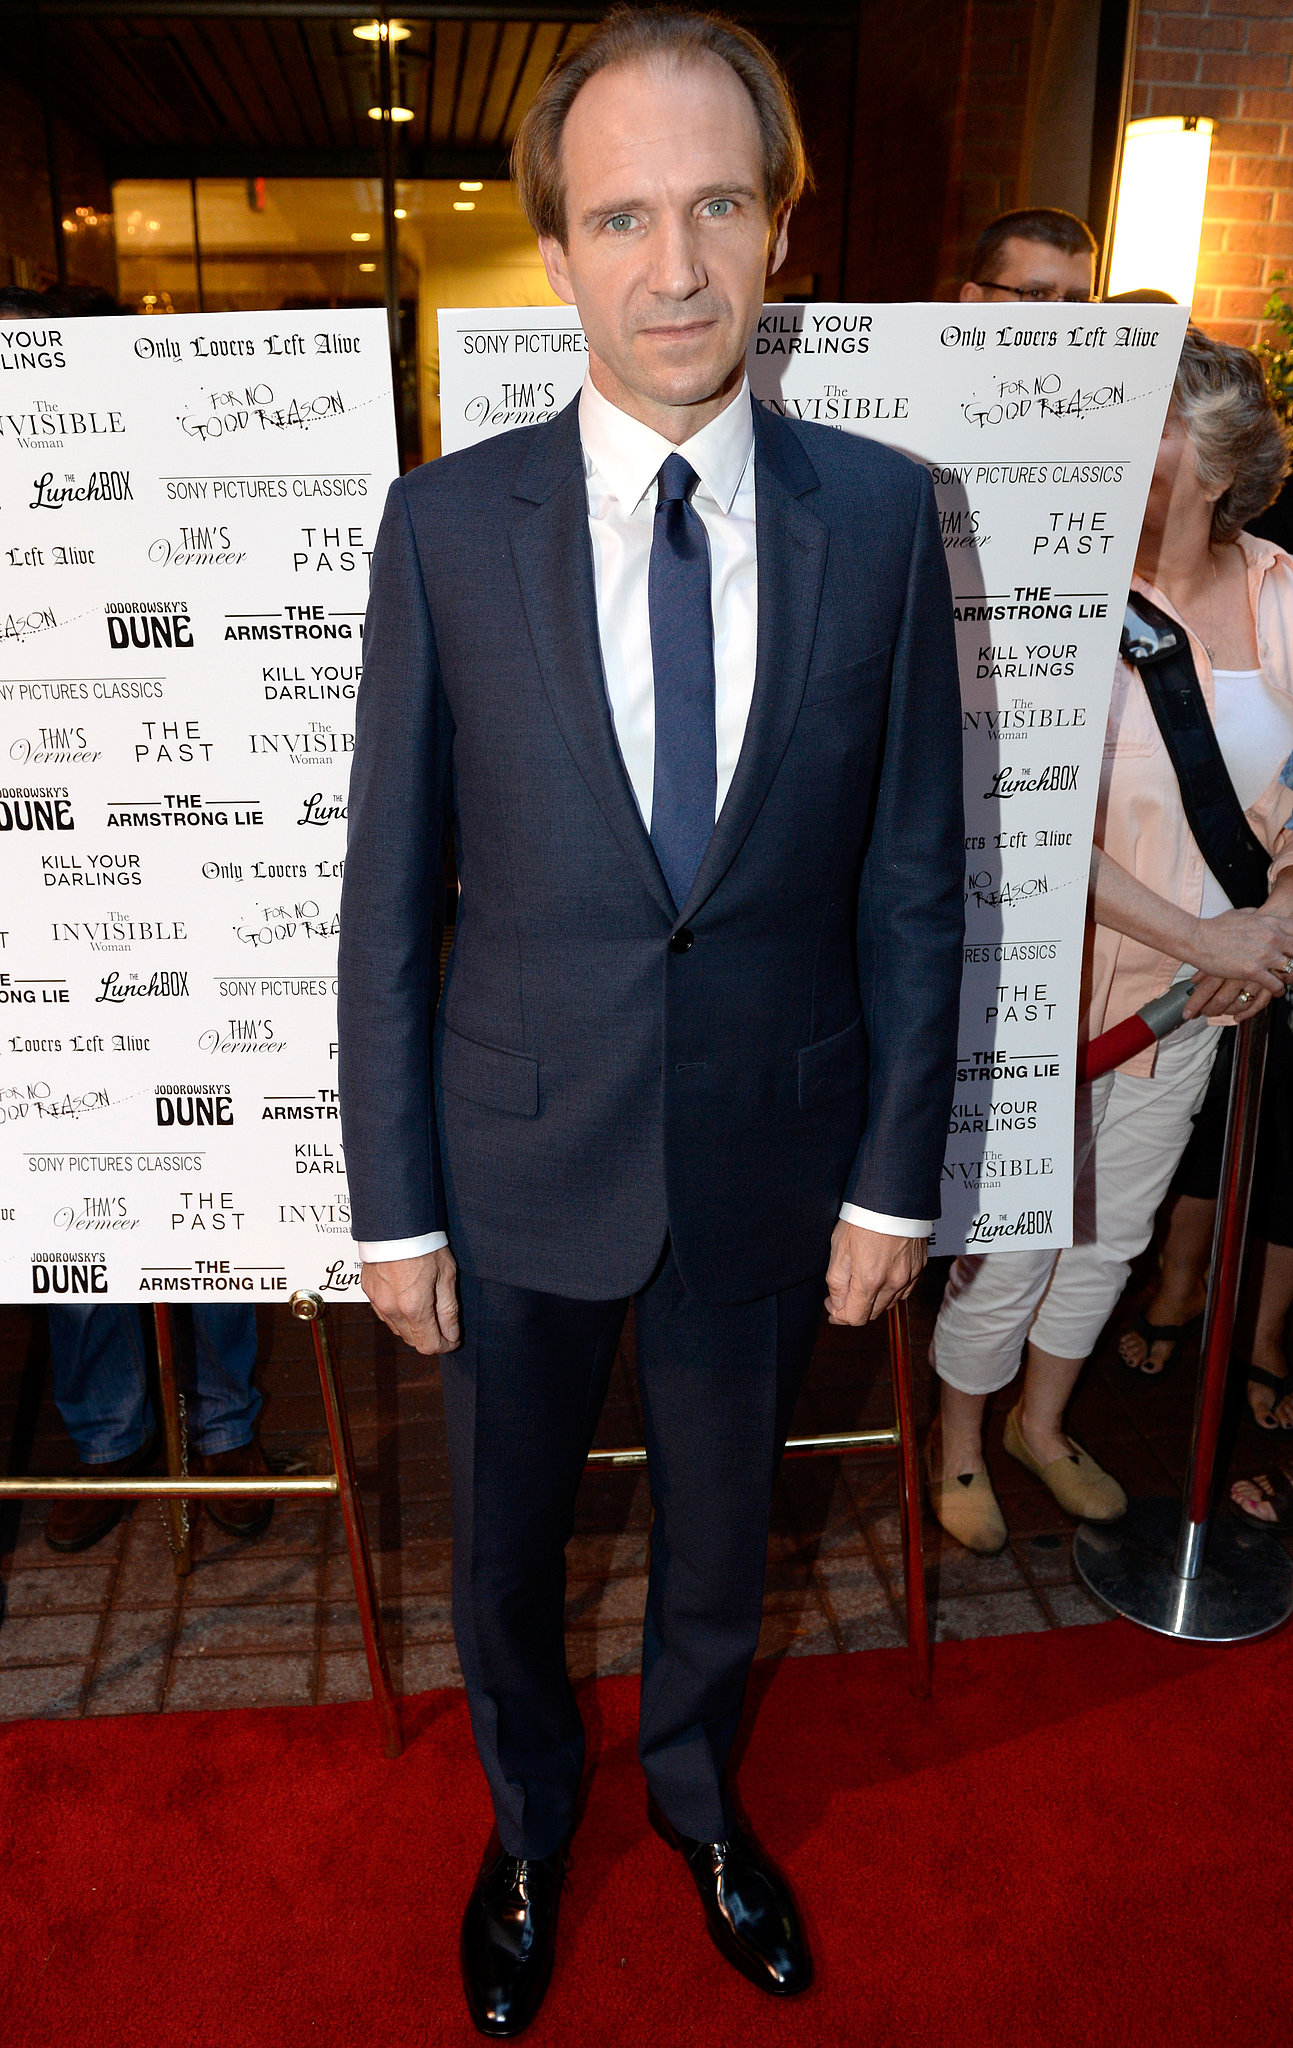 Ralph Fiennes popped up at the Sony Pictures Classics cast dinner.